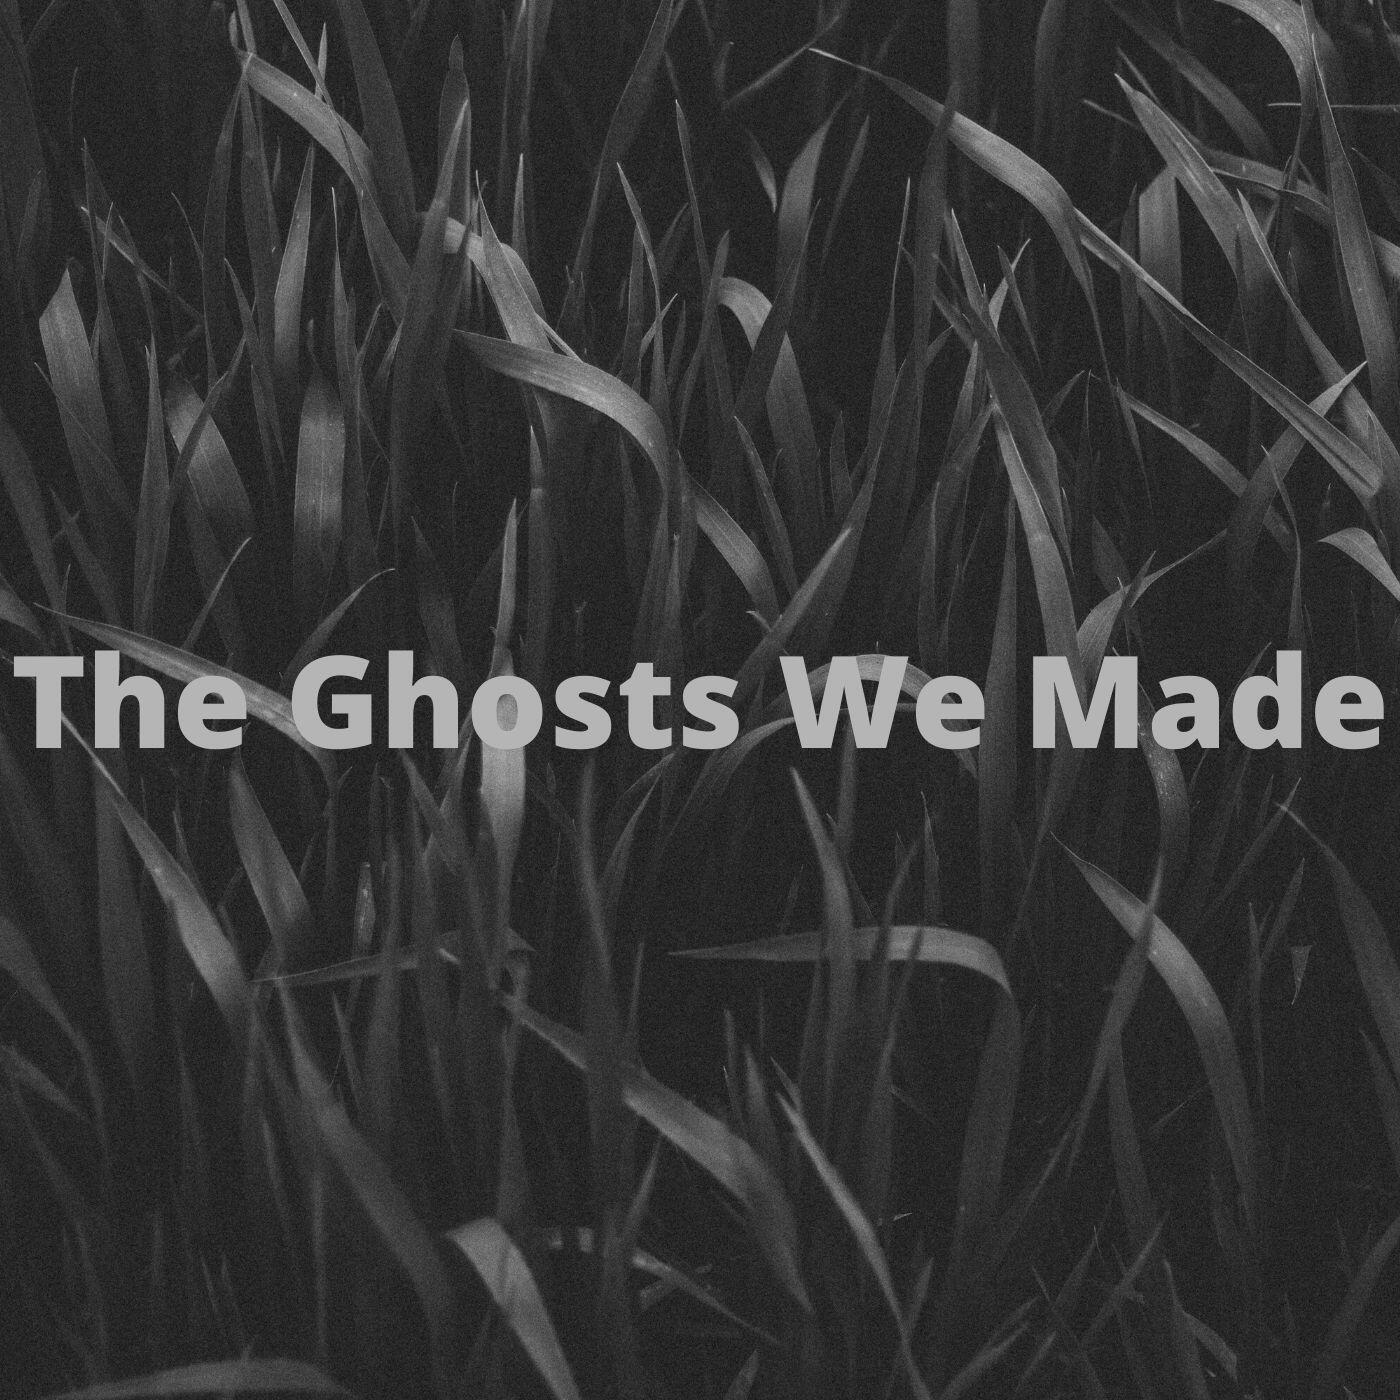 The Ghosts We Made